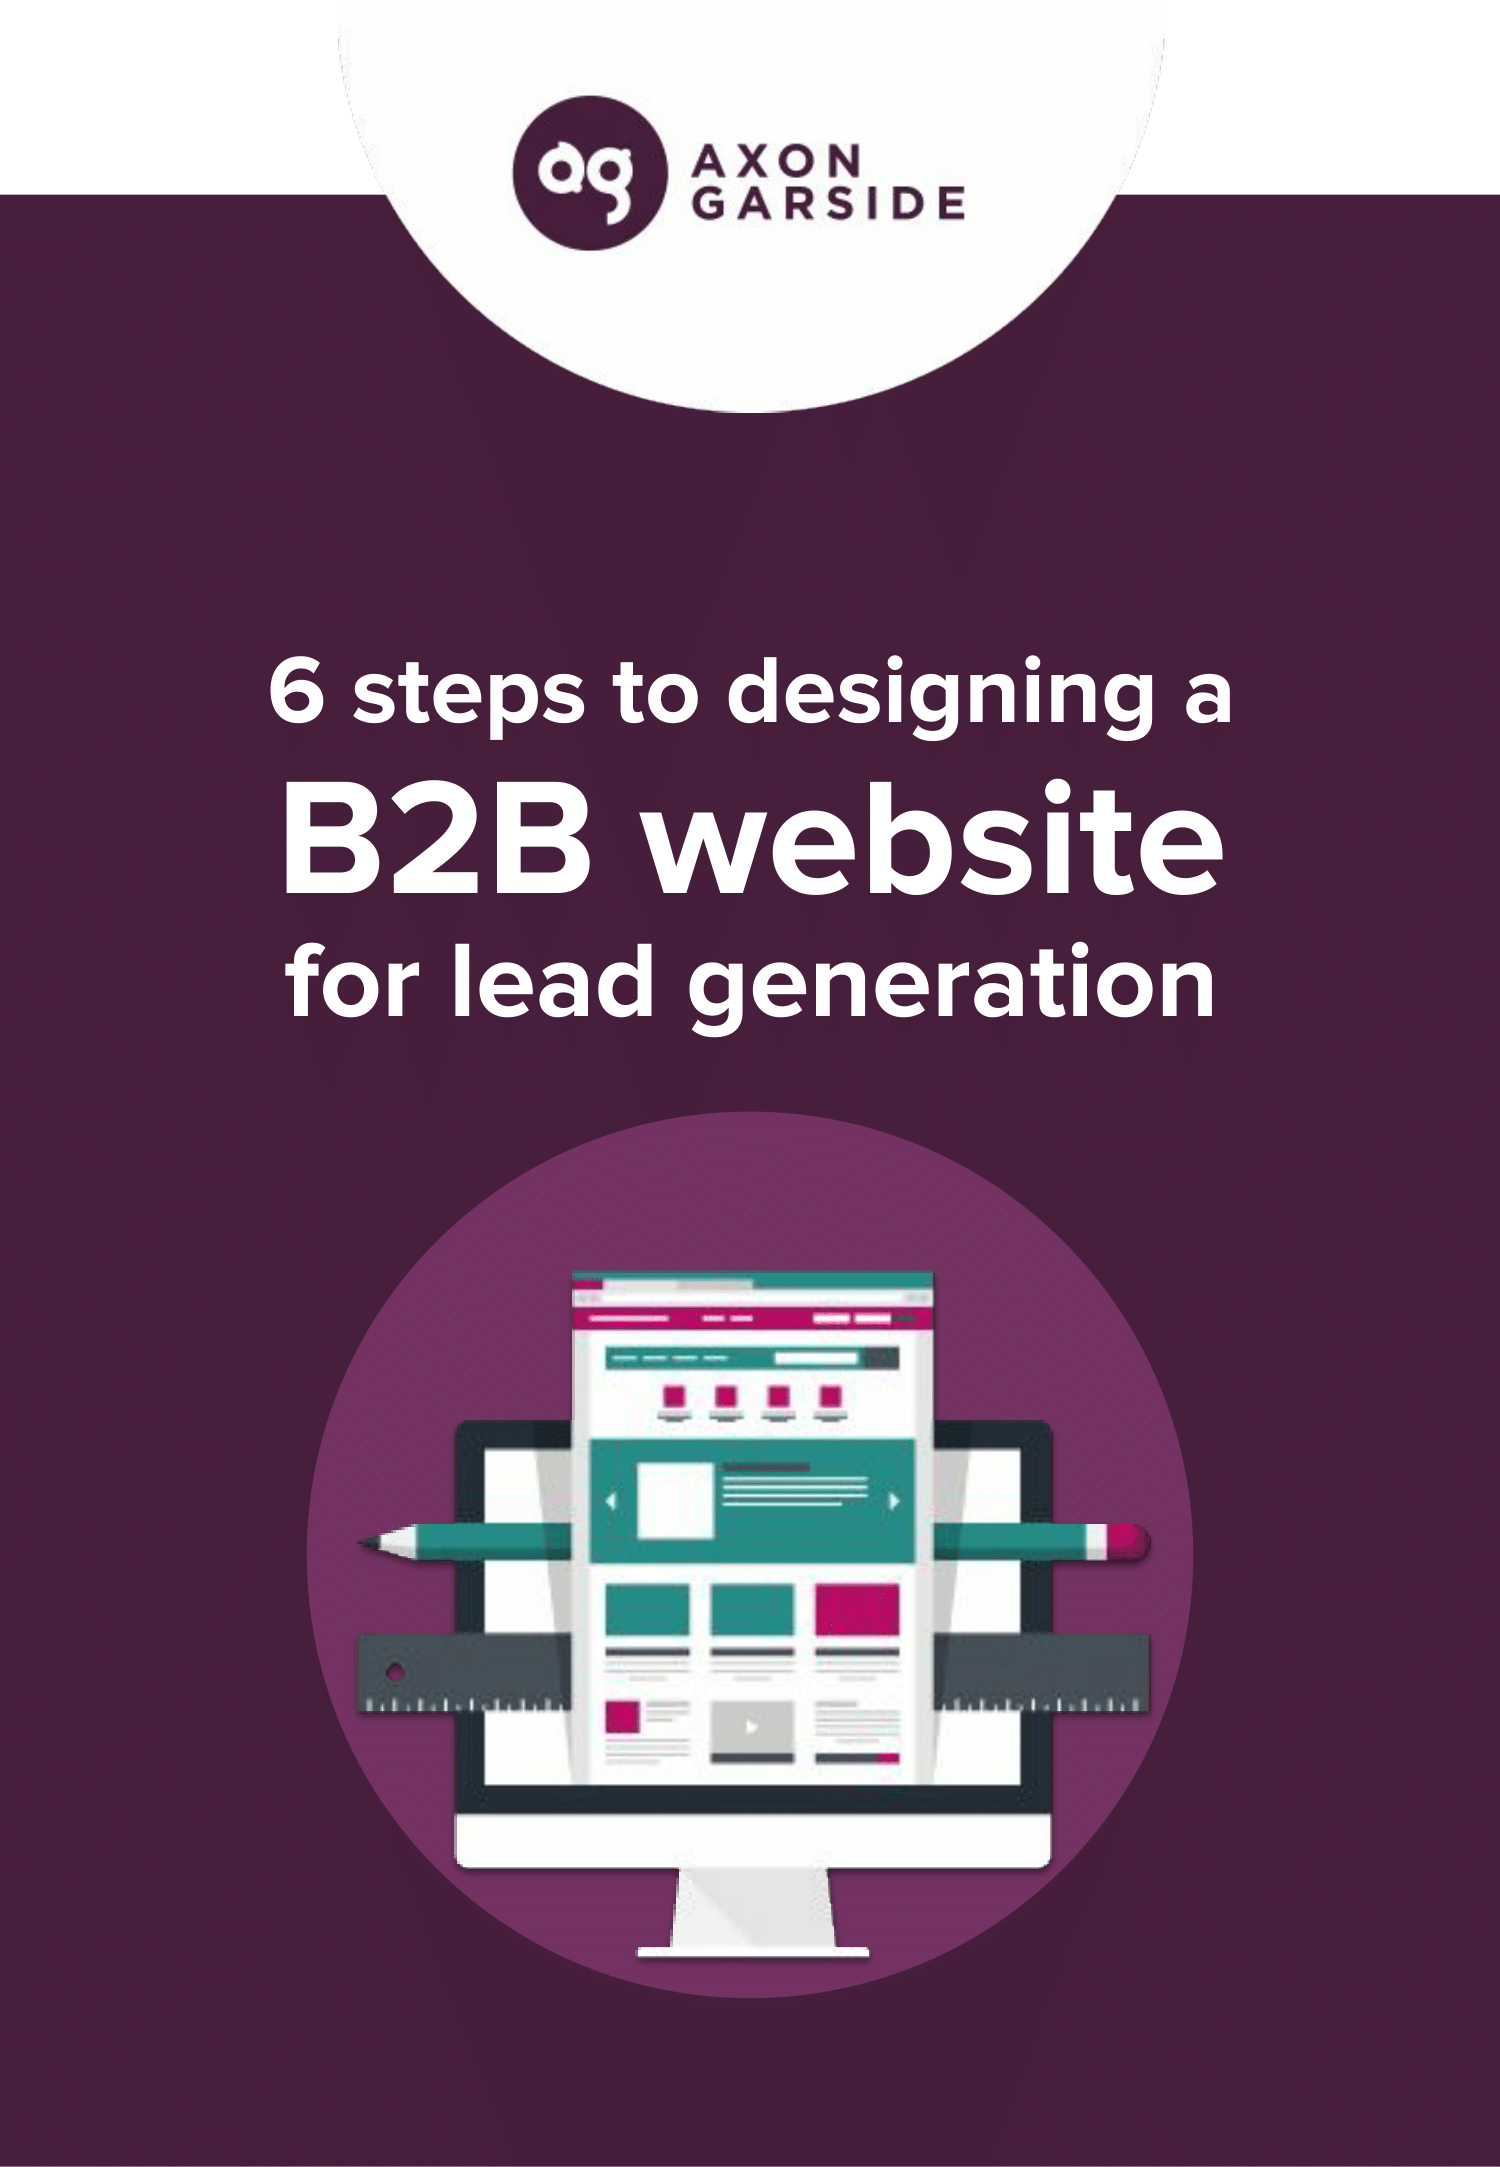 6-steps-to-designing-a-b2b-website-ebook-resources